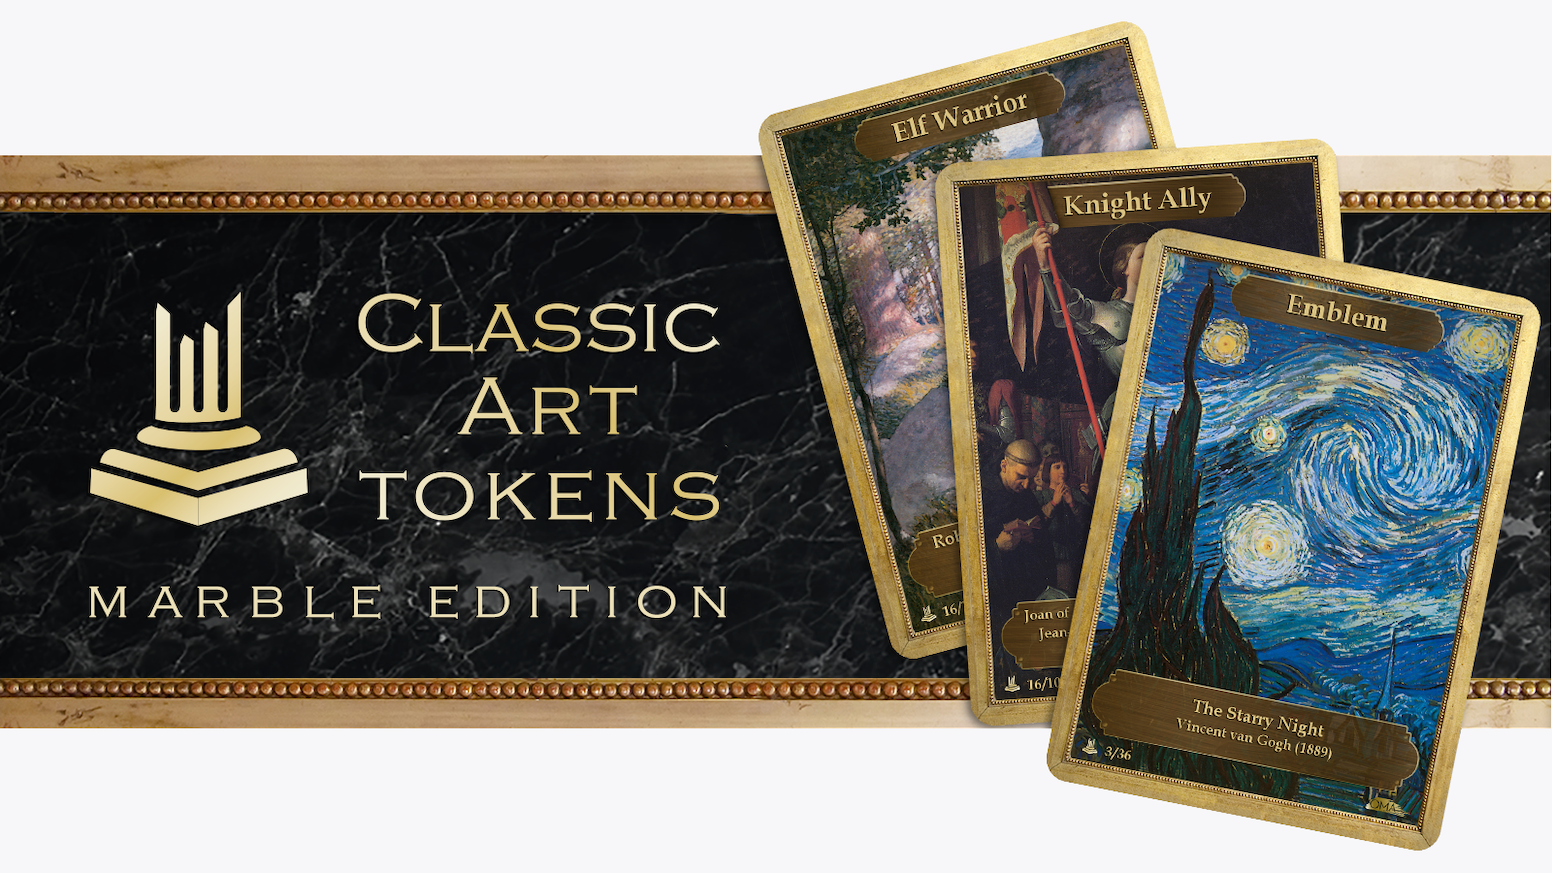 Step up your game and be the envy of your friends with Classic Art Tokens: Marble Edition.